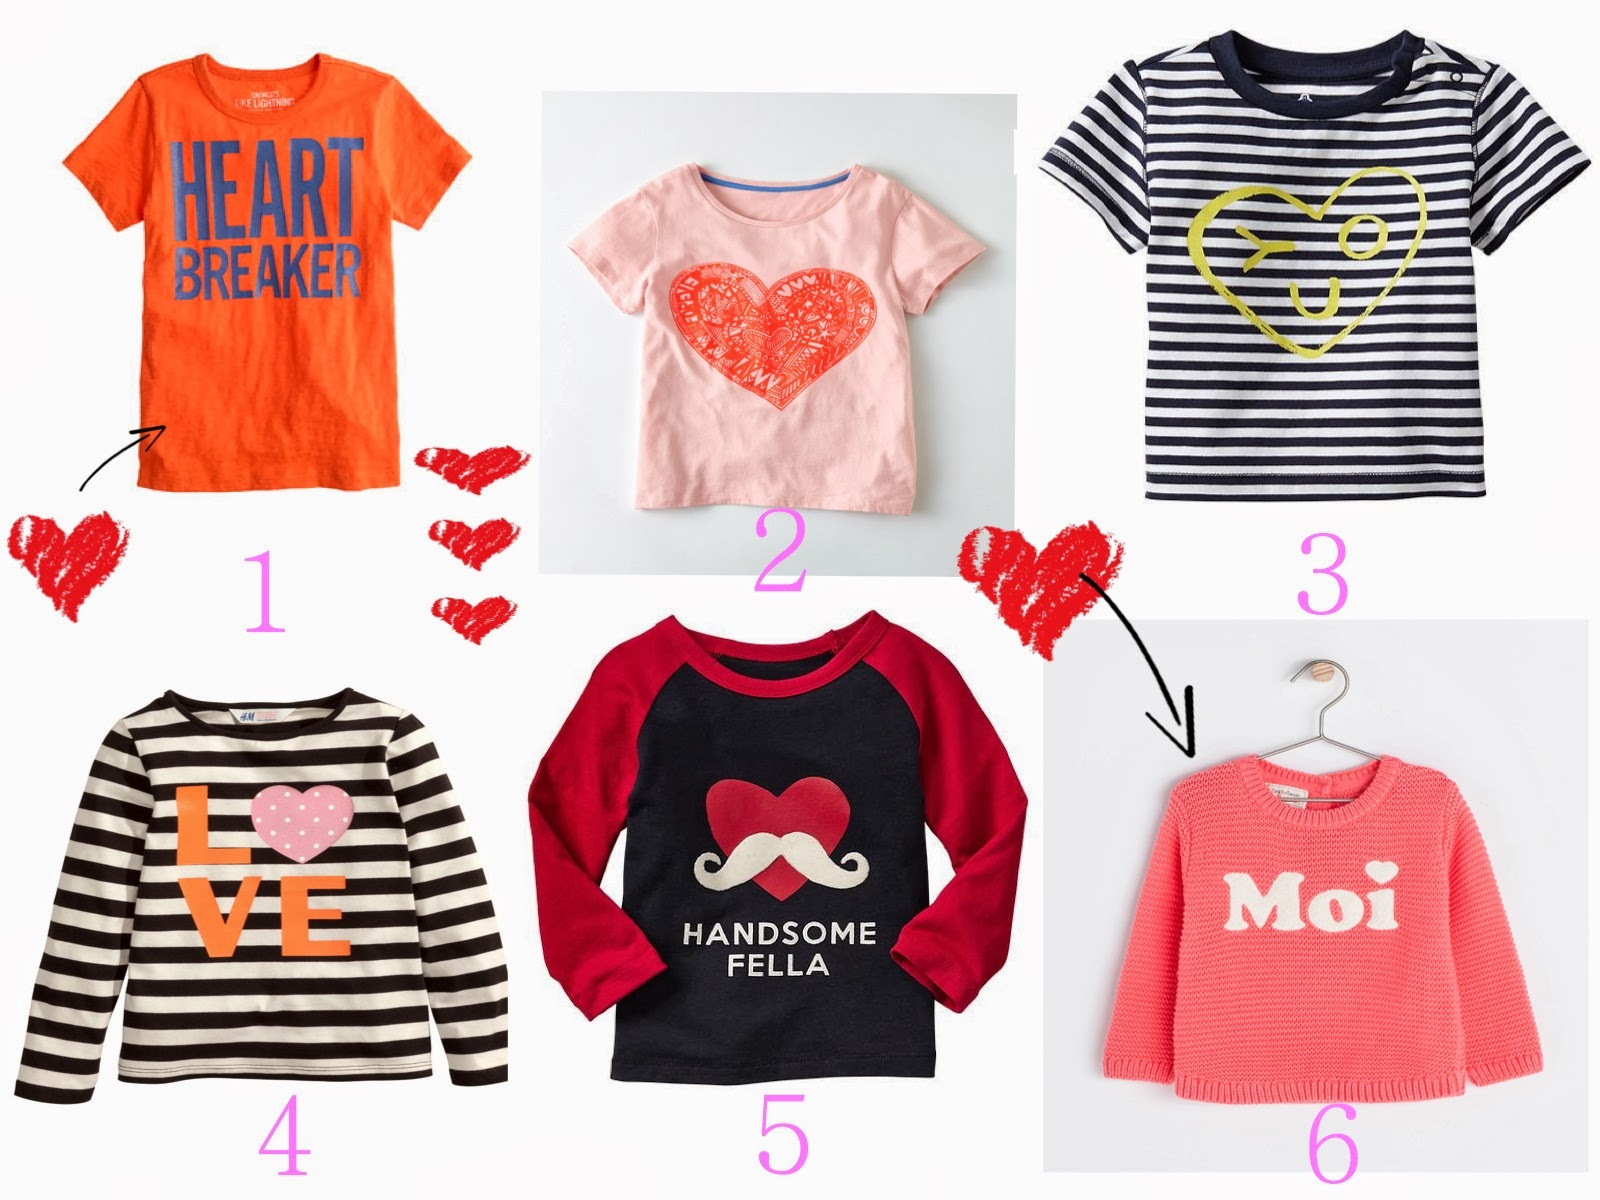 Fesselnd 6 Stylish Valentineu0027s Day T Shirts For The Little Girls And Boys | V. I.  BUYS